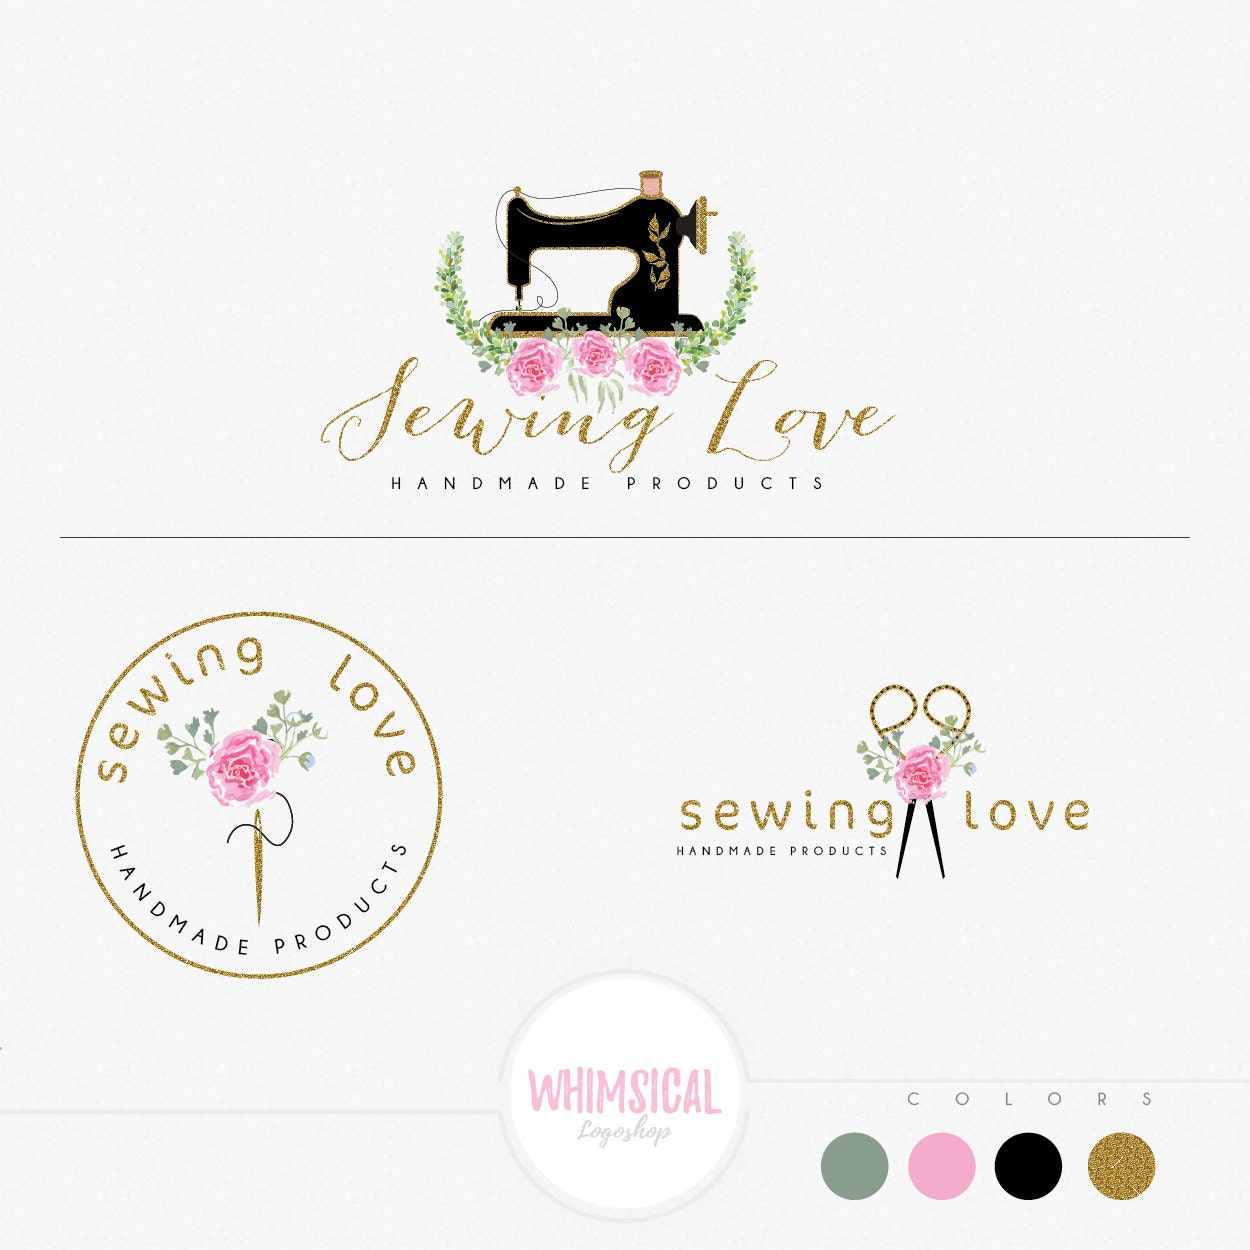 Floral Sewing Machine Handmade Products Logo Craft Store